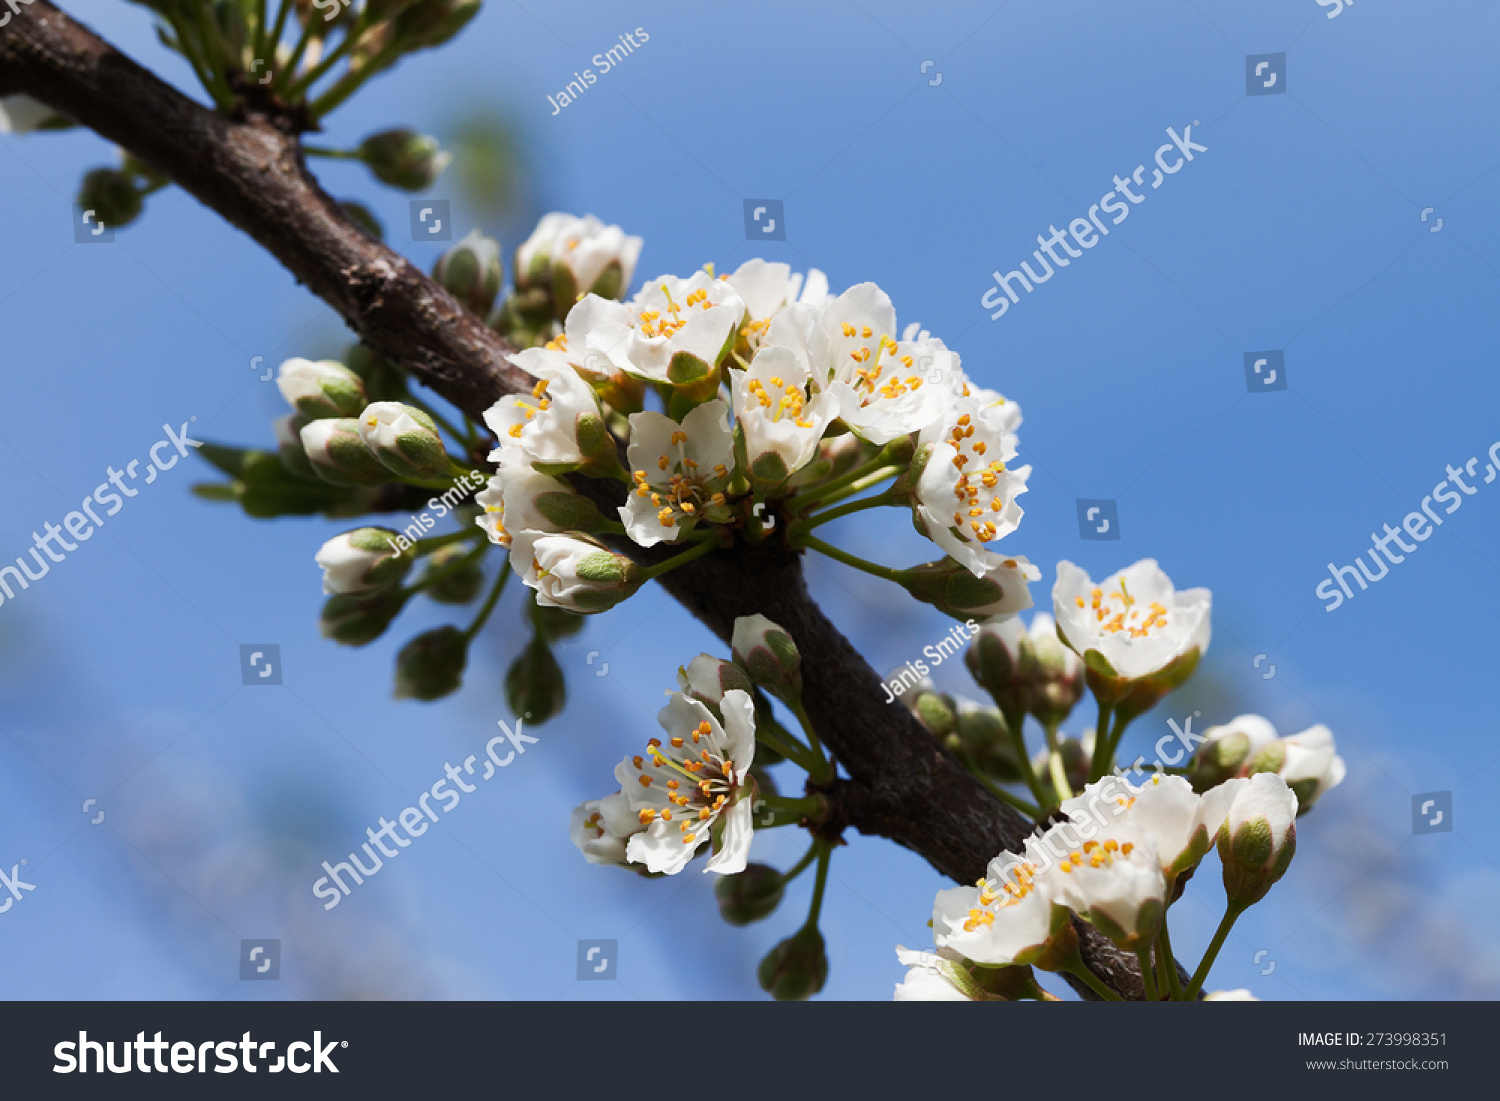 Plum blossoms in spring time